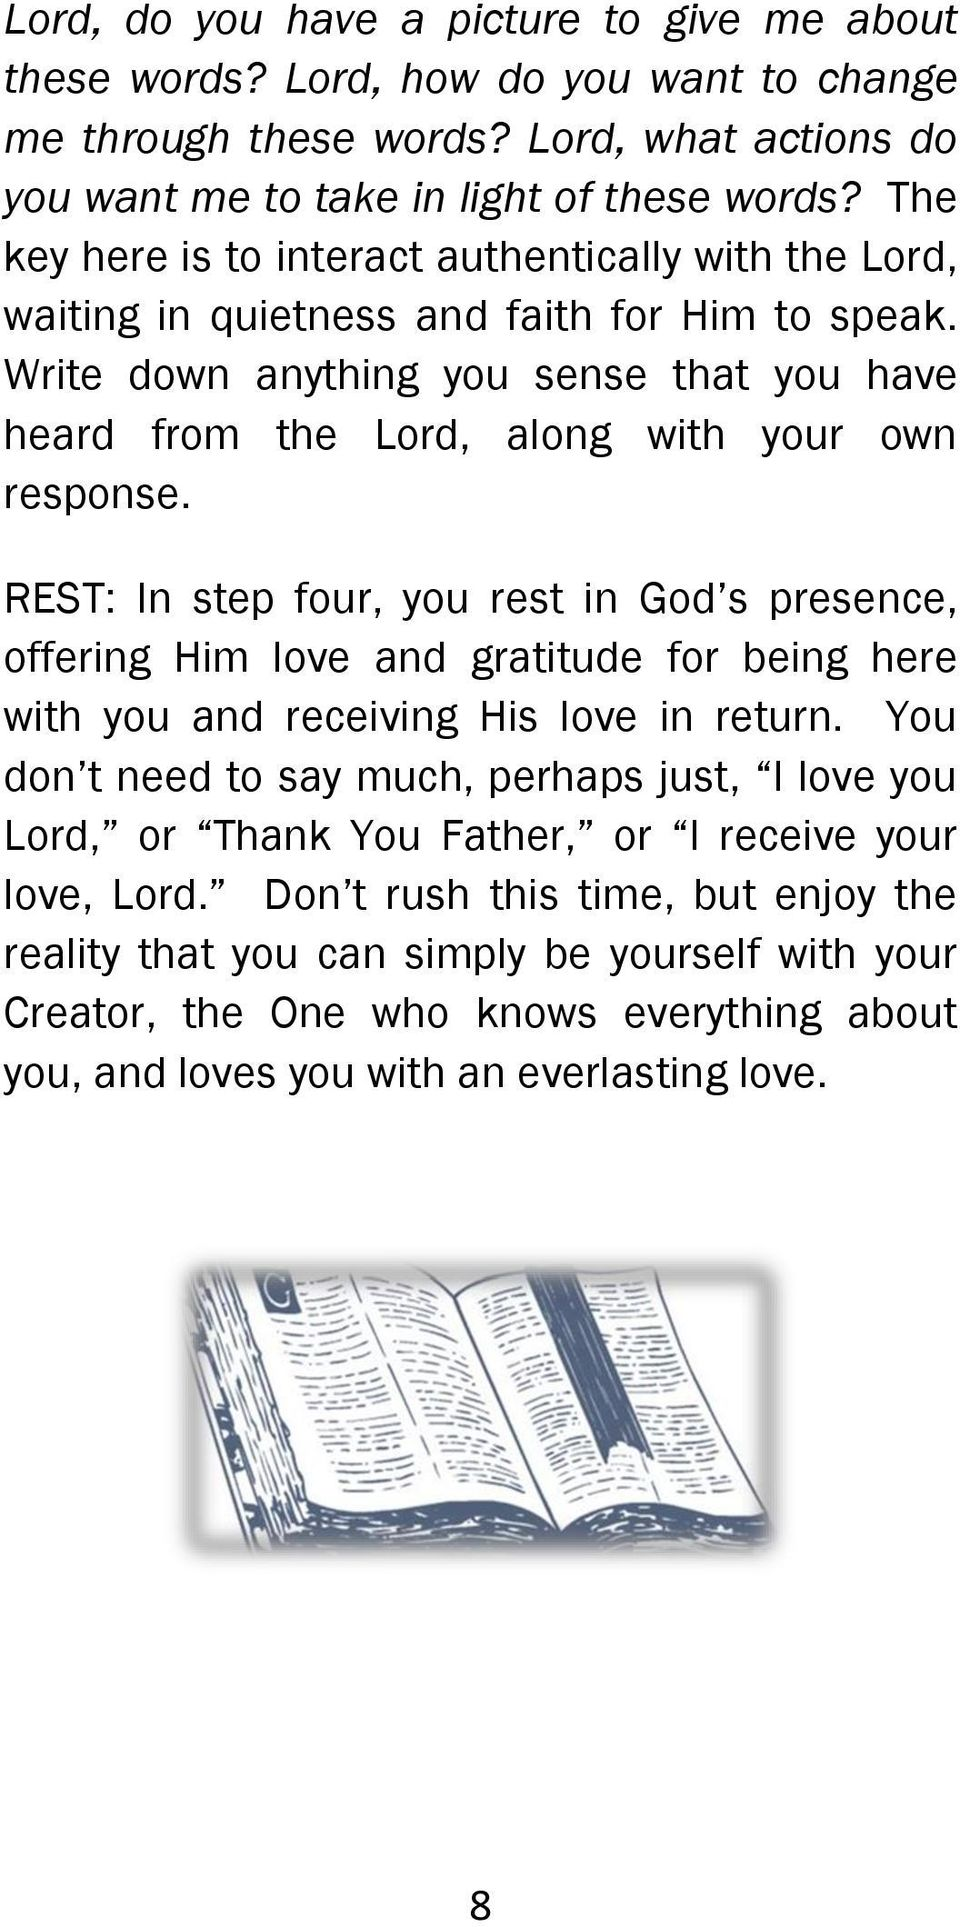 REST: In step four, you rest in God s presence, offering Him love and gratitude for being here with you and receiving His love in return.